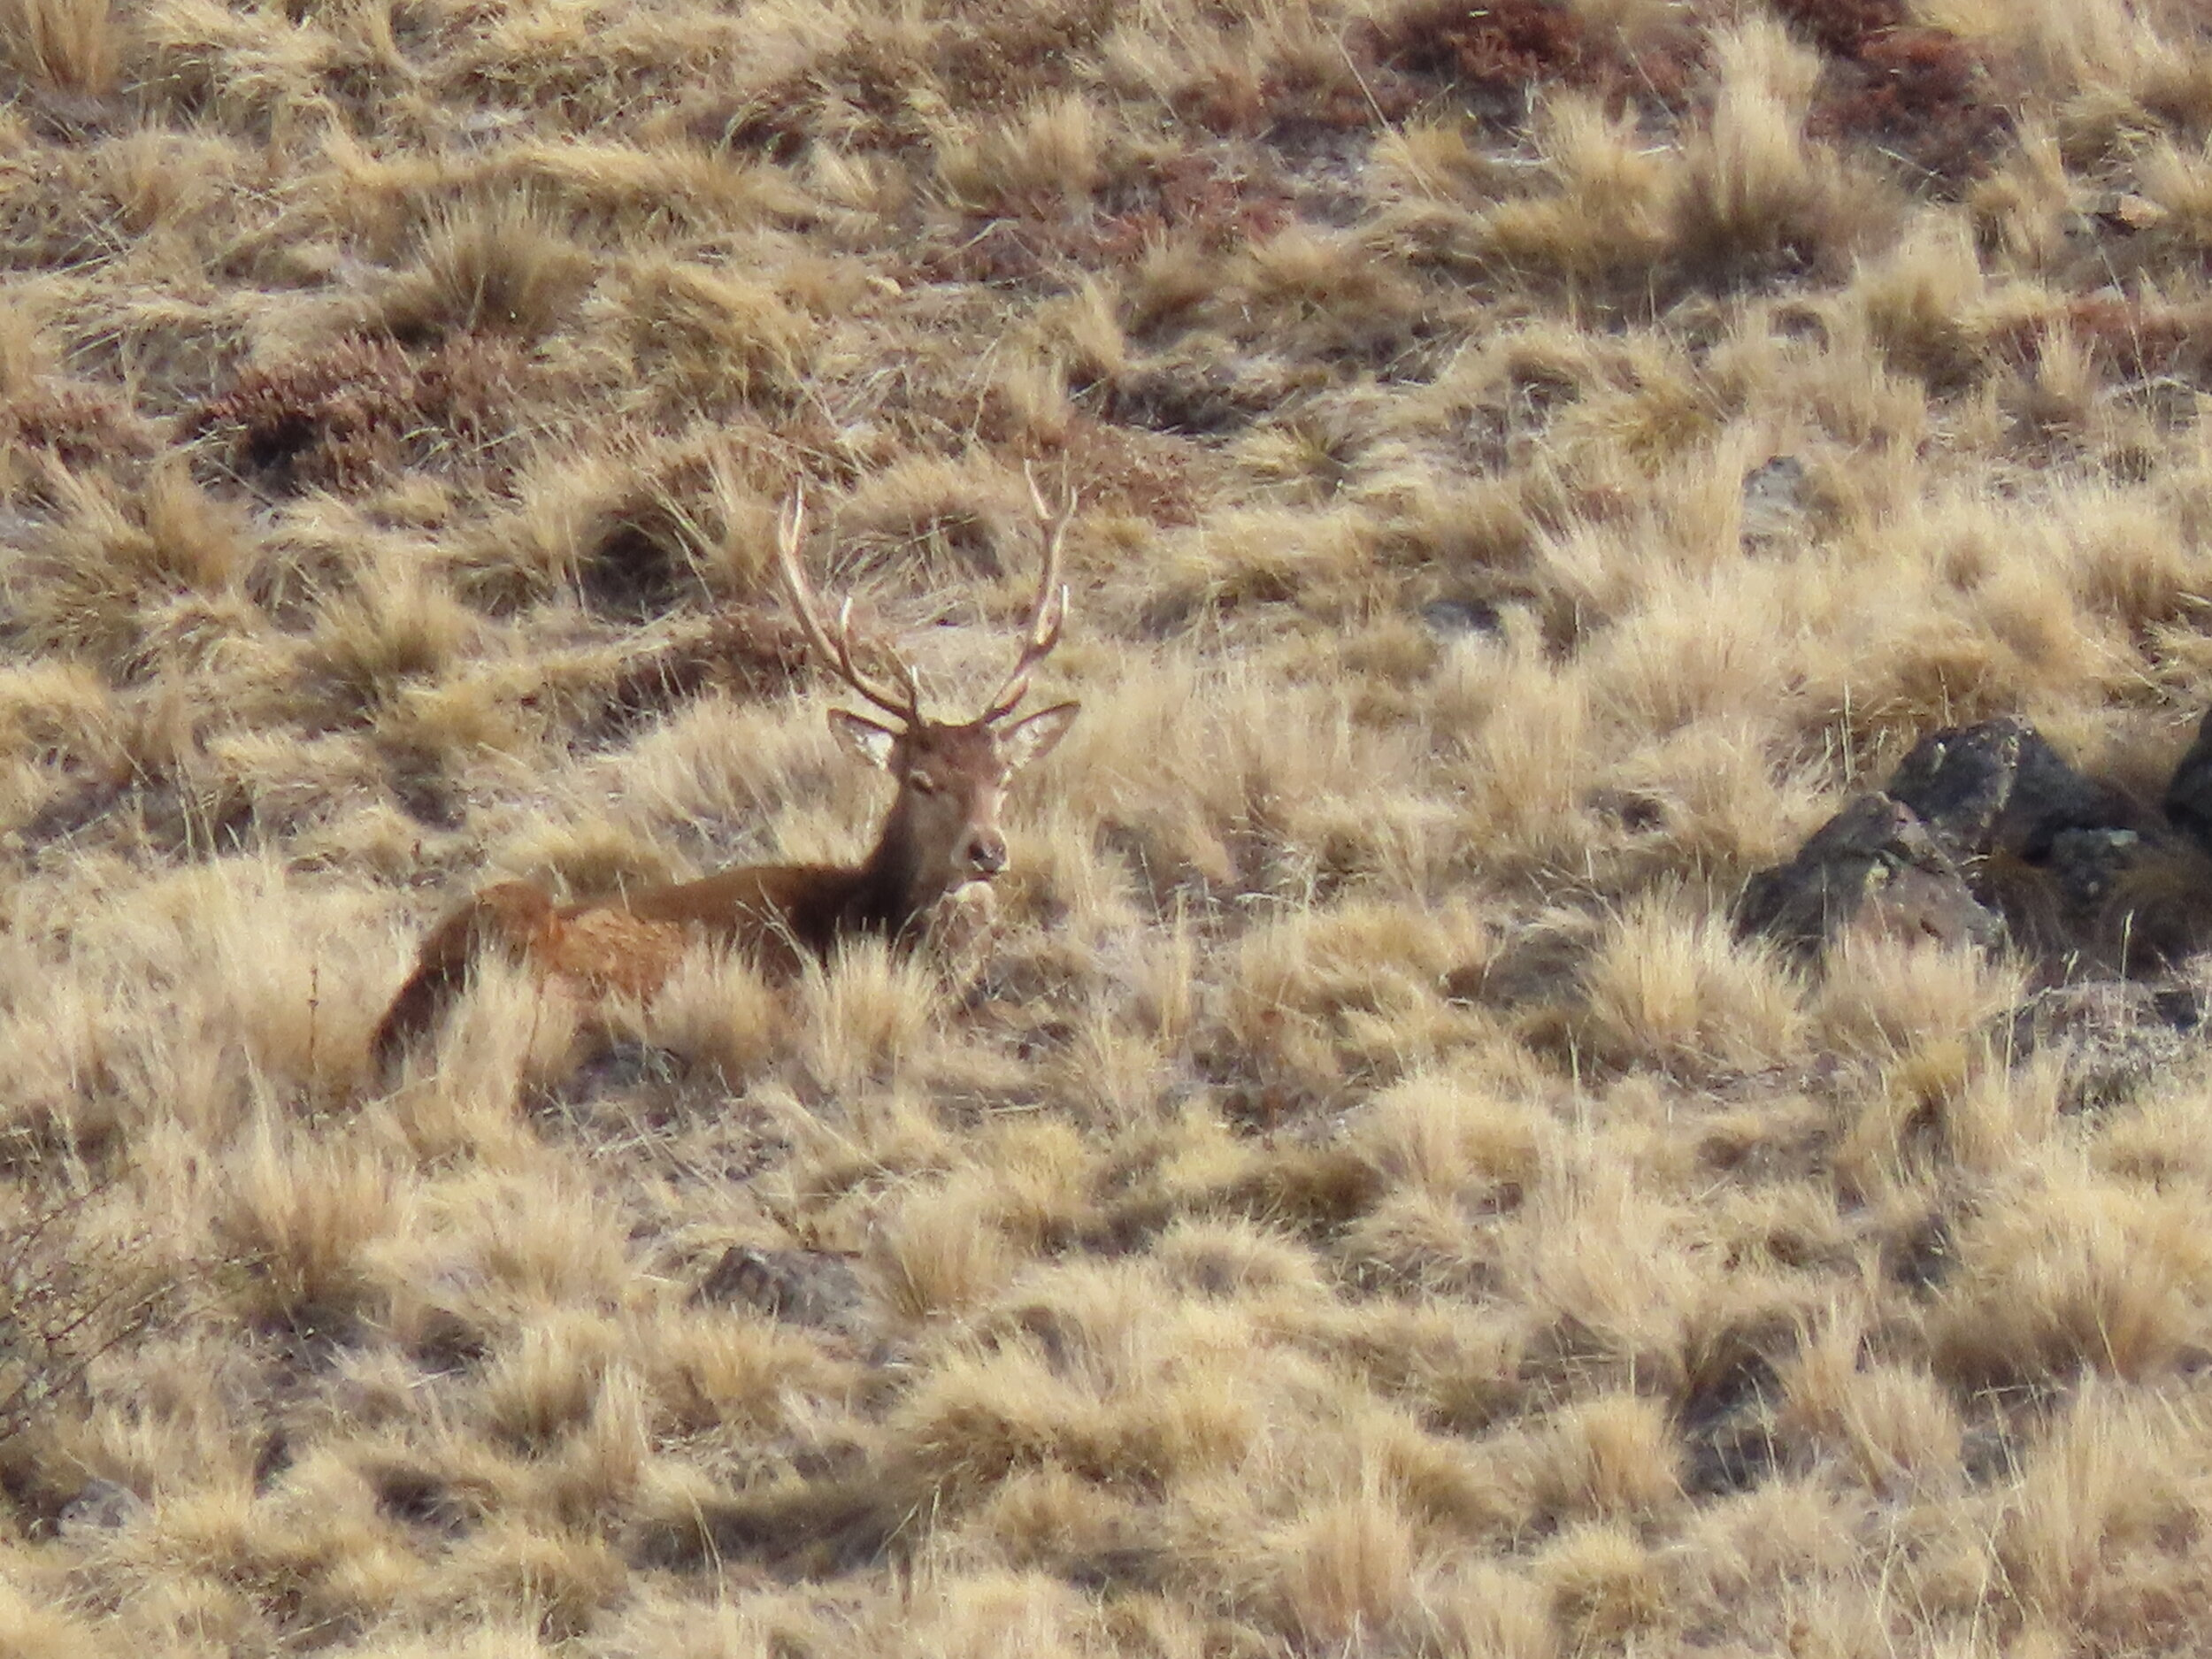 young stag bedded down